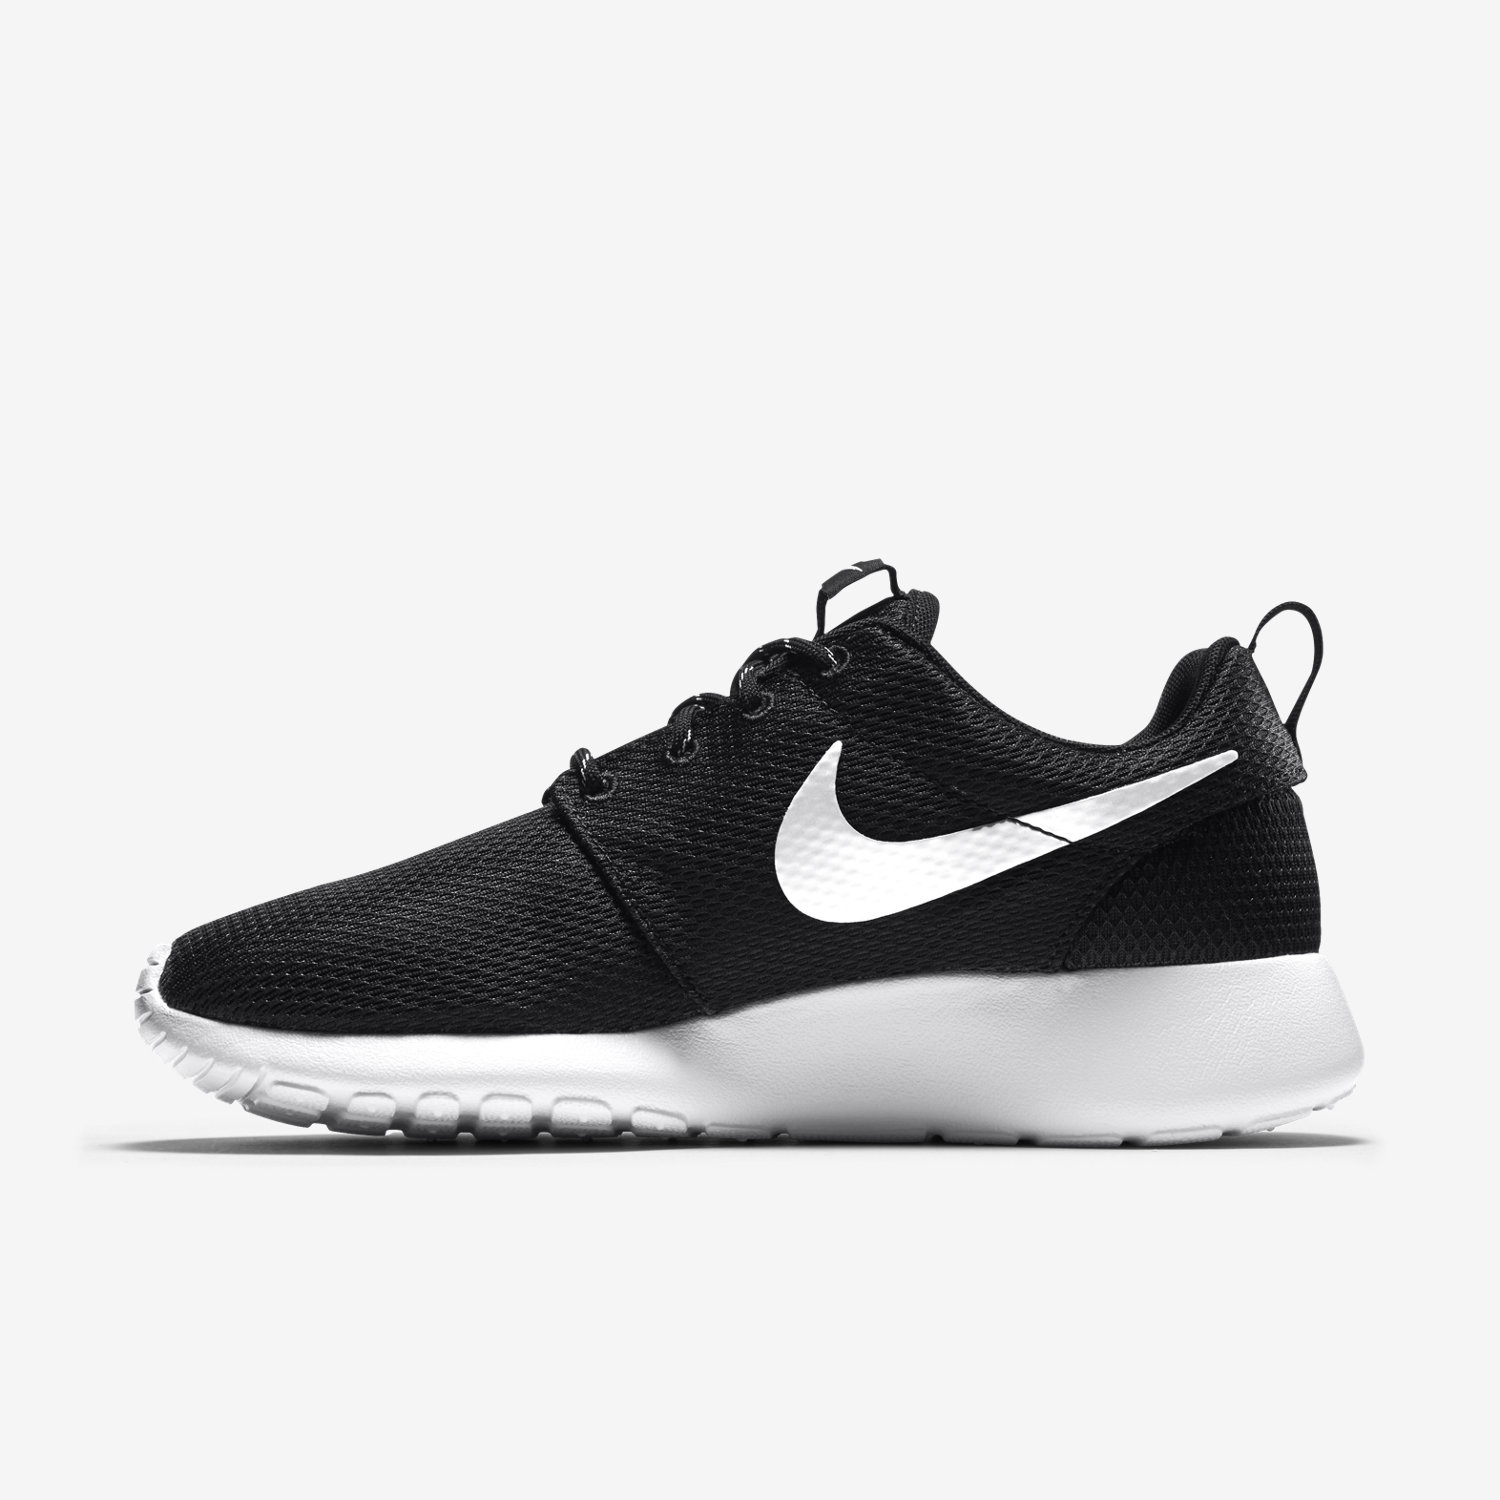 809498cfc1ea Womens Black Nike Roshes